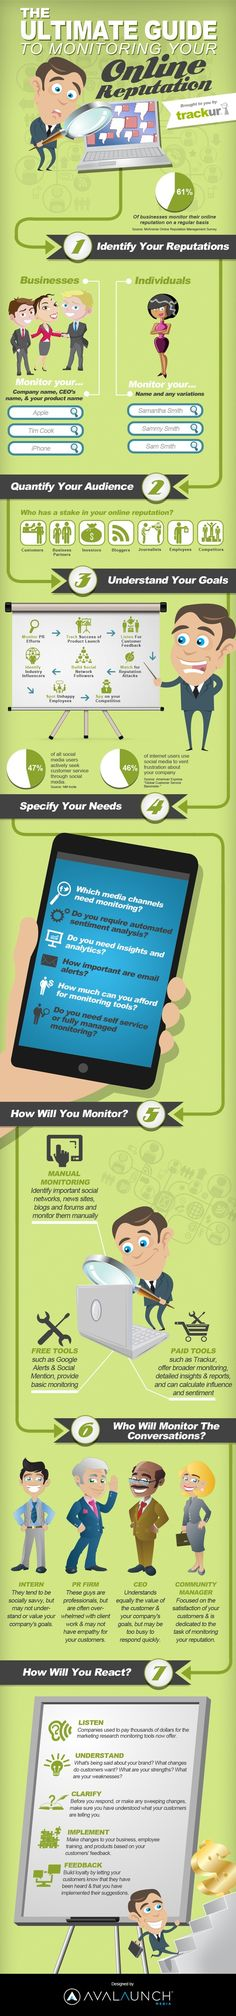 the ultimate guide to monitoring your online reputation  #internet #marketing #social #media #infography #make #money #online #facebook #traffic #target #search #engine #optimization #seo #affiliate #IM